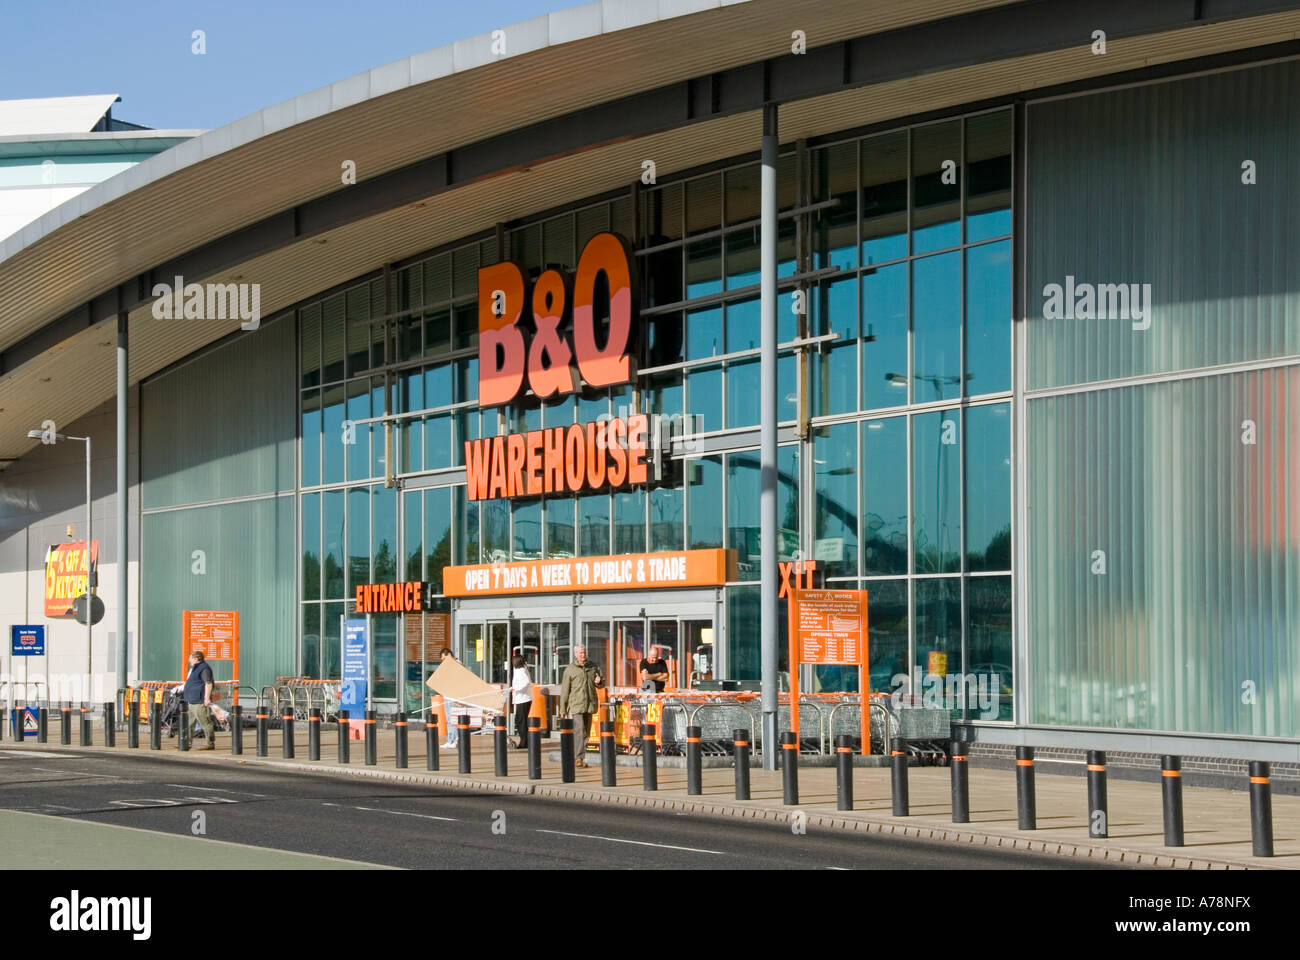 South london entrance to bq do it yourself warehouse store in south london entrance to bq do it yourself warehouse store in retail shopping park includes bollards to reduce ram raid risk solutioingenieria Images